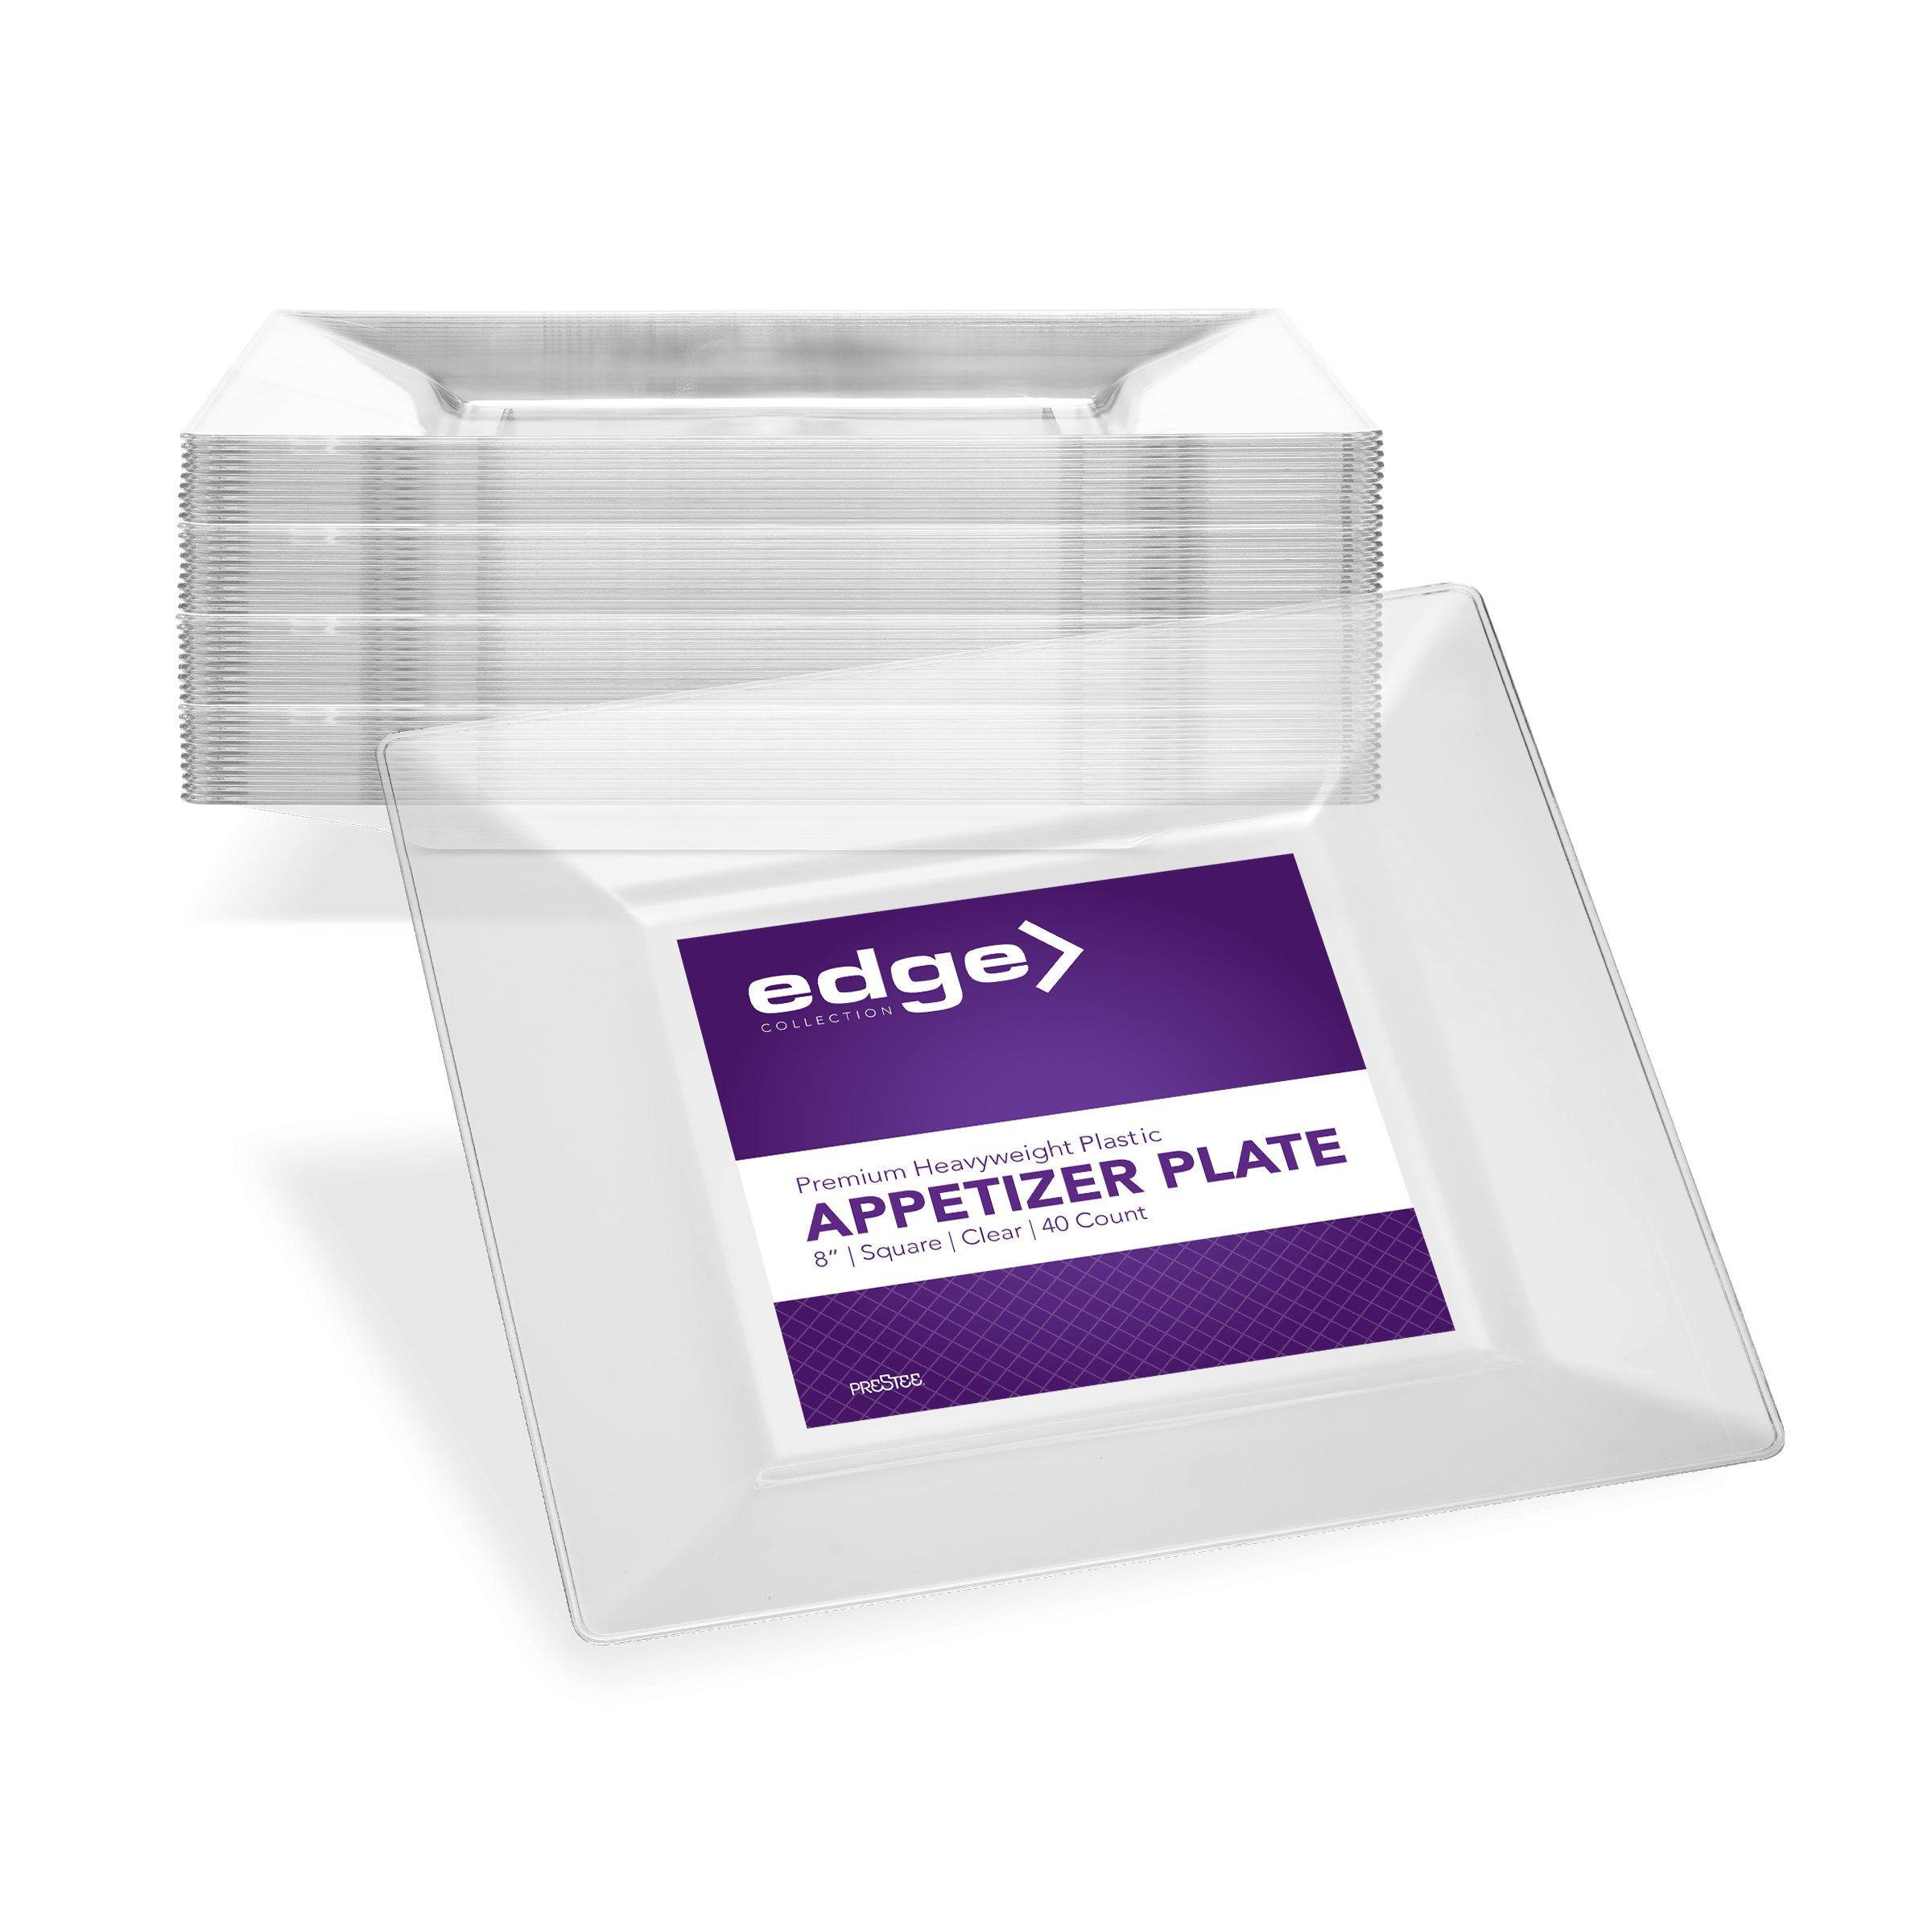 EDGE CLEAR PLASTIC PARTY DISPOSABLE PLATES | 8 Inch Hard Square Wedding Appetizer Plates, 40 Ct | Elegant & Fancy Heavy Duty Hard Party Supplies Salad Plates for Holidays & Occasions